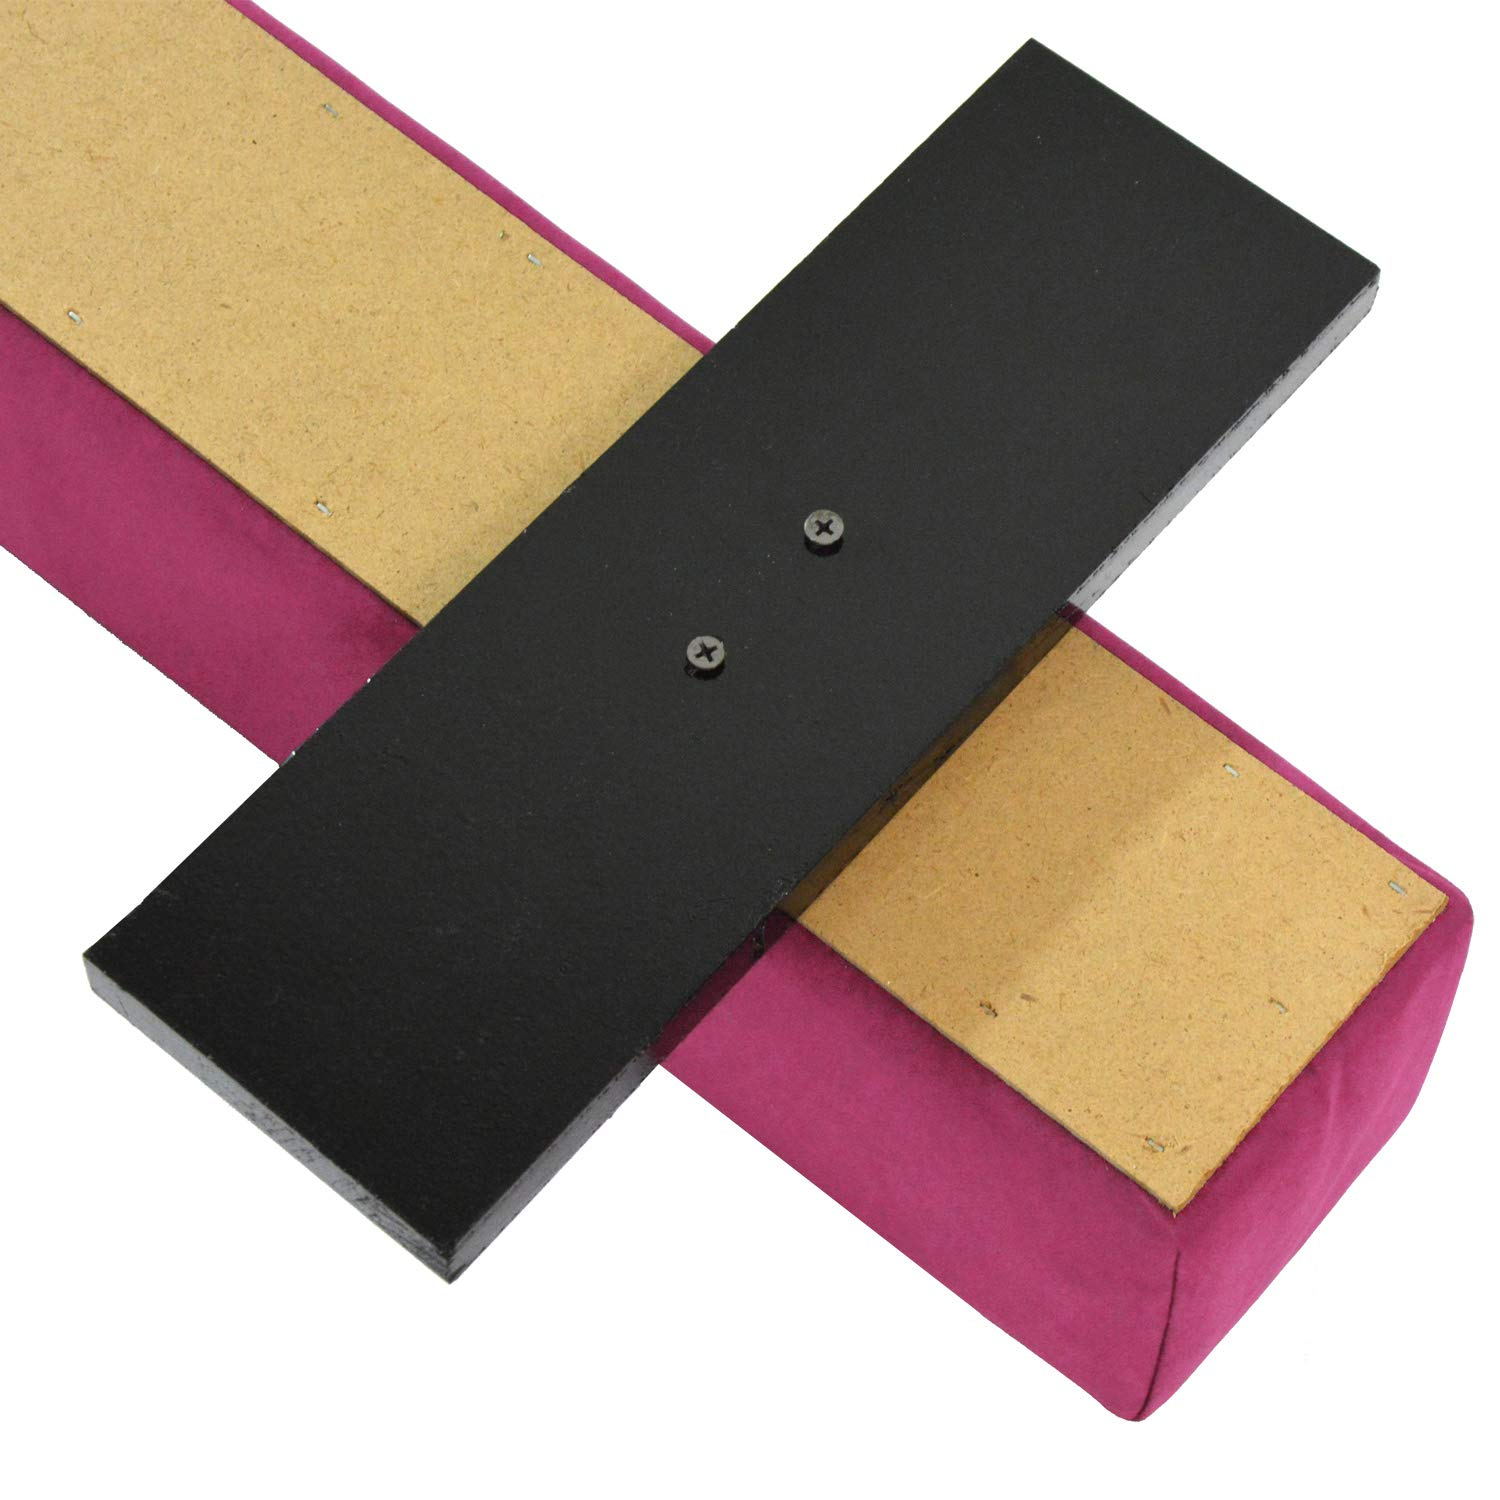 Modern-Depo 8ft Folding Balance Beam with Non Slip Floor Feet, Standard 4 Inches Width Suede Surface and Wood Base Floor Beam for Kids Home Gymnastics Training (Pink) by Modern-Depo (Image #7)